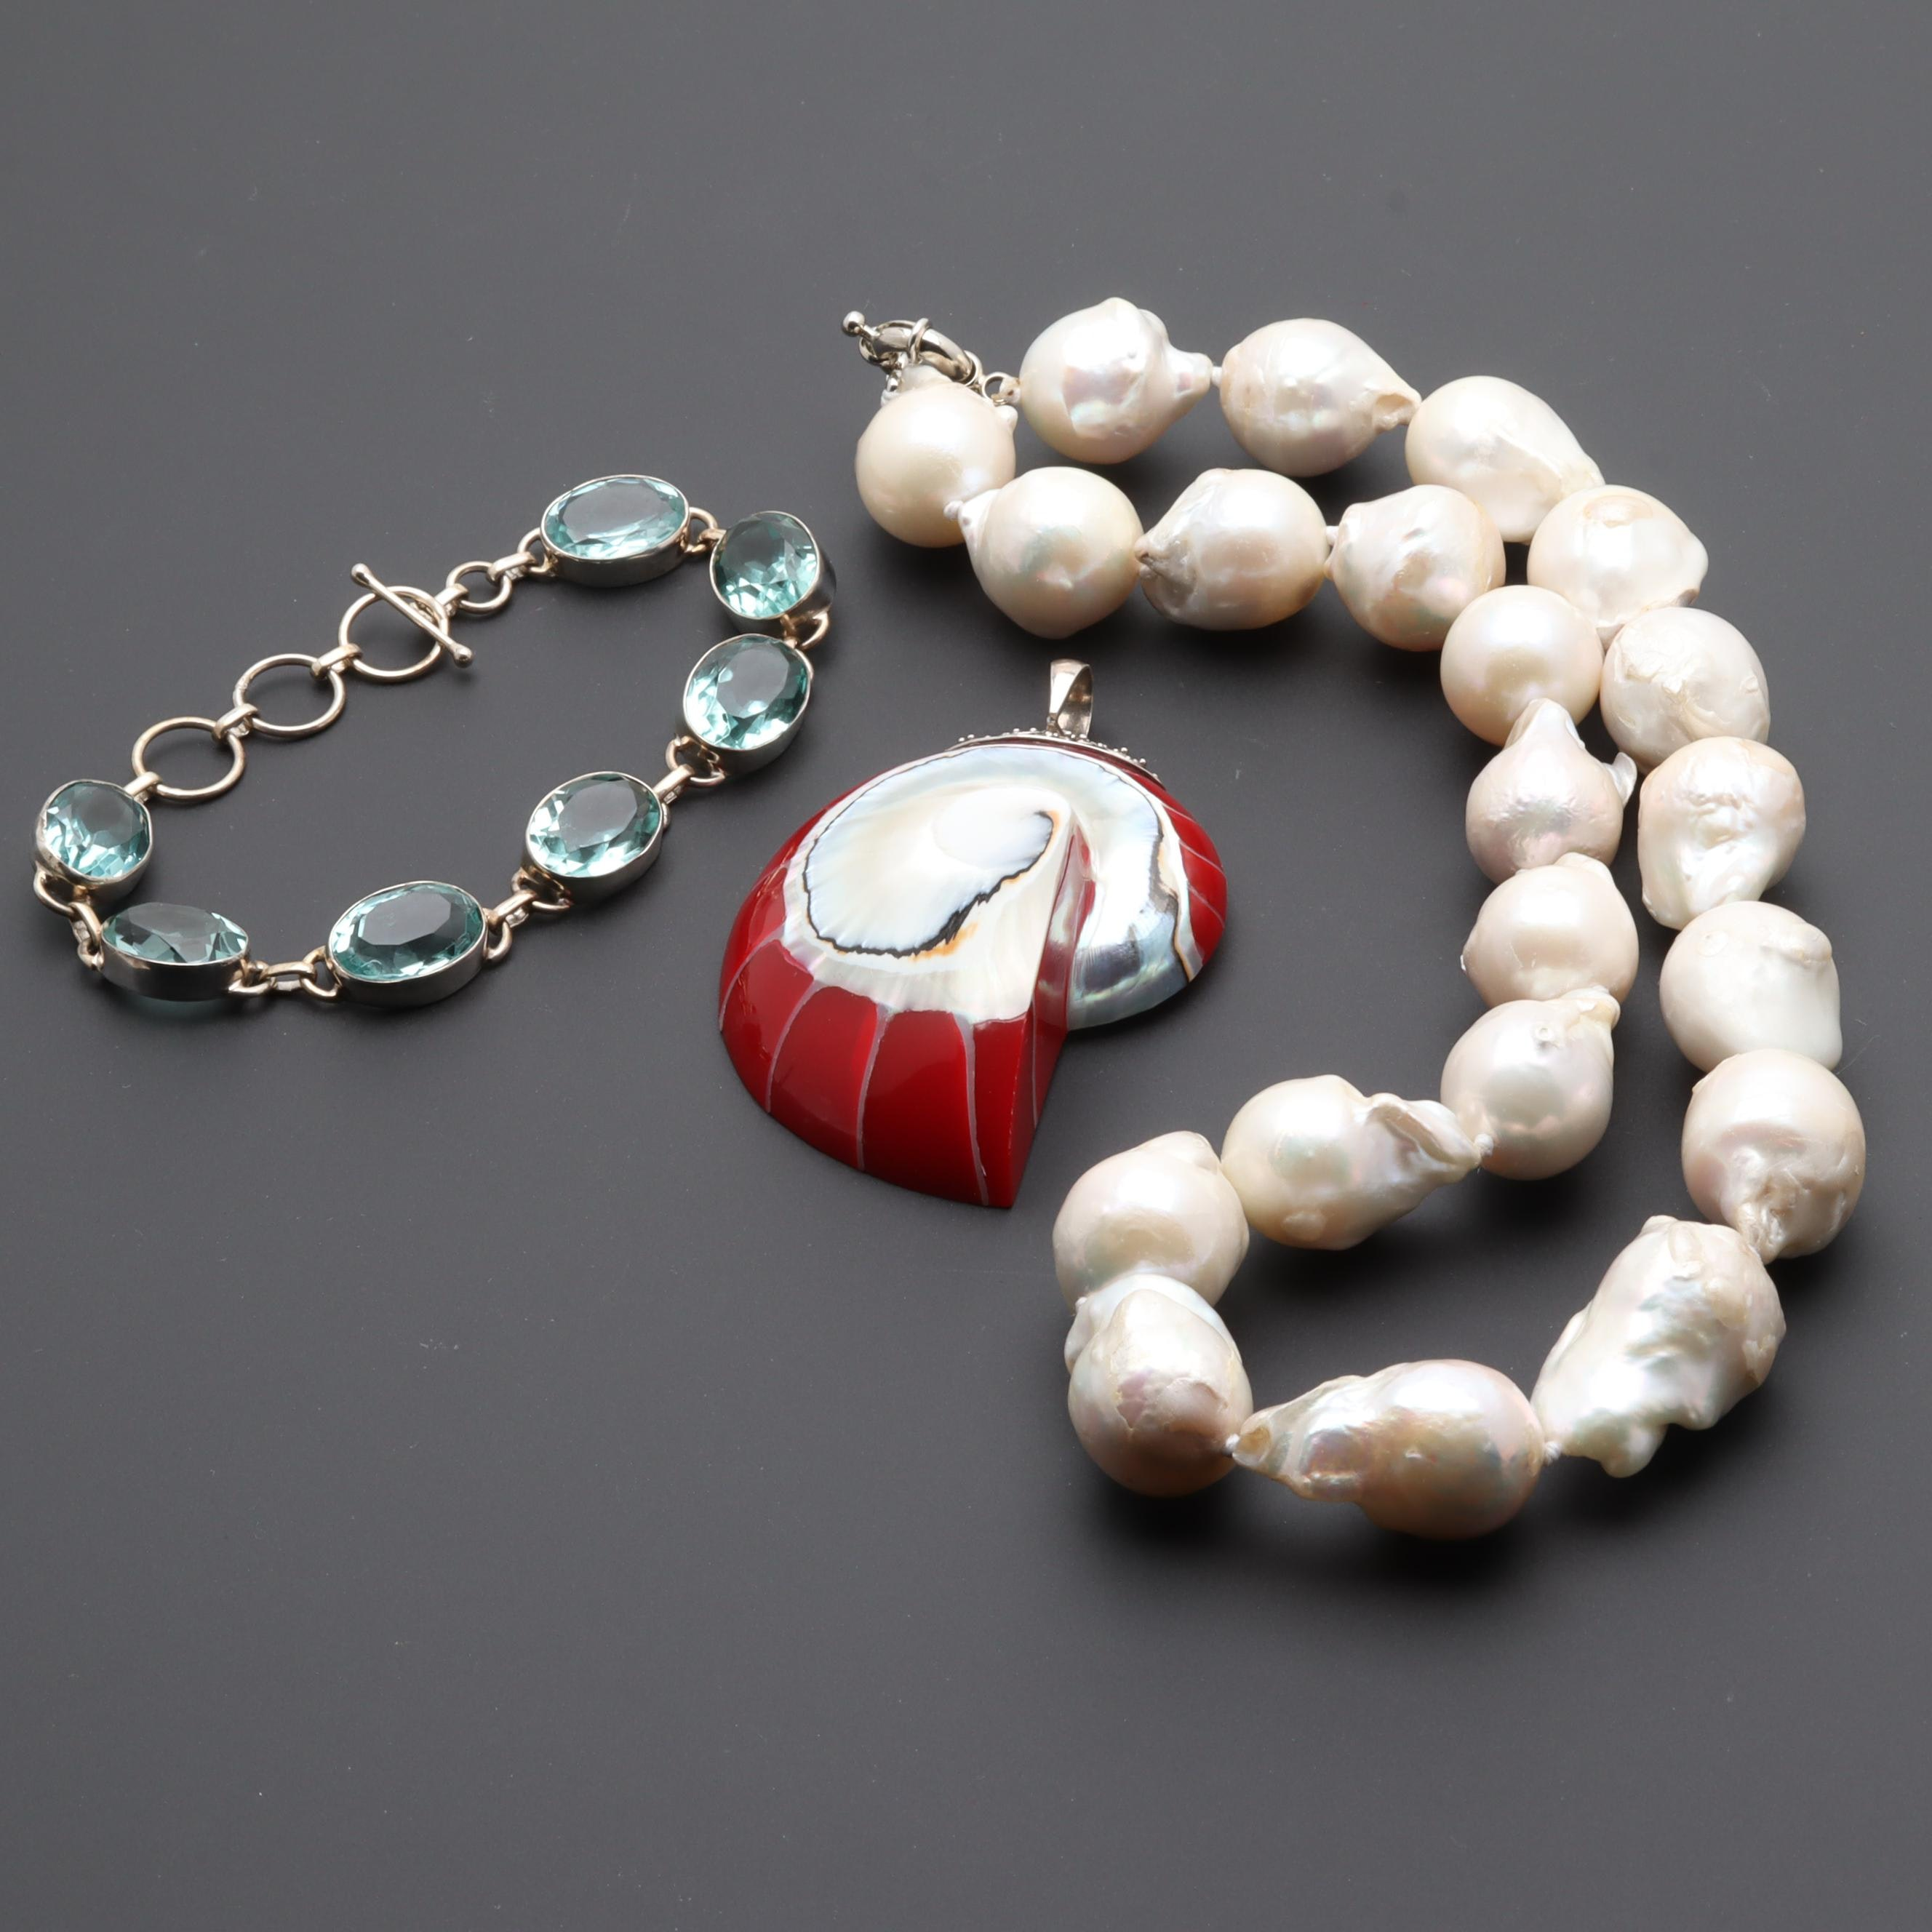 Sterling Silver and Silver Tone Shell, Cultured Pearl, and Glass Jewelry